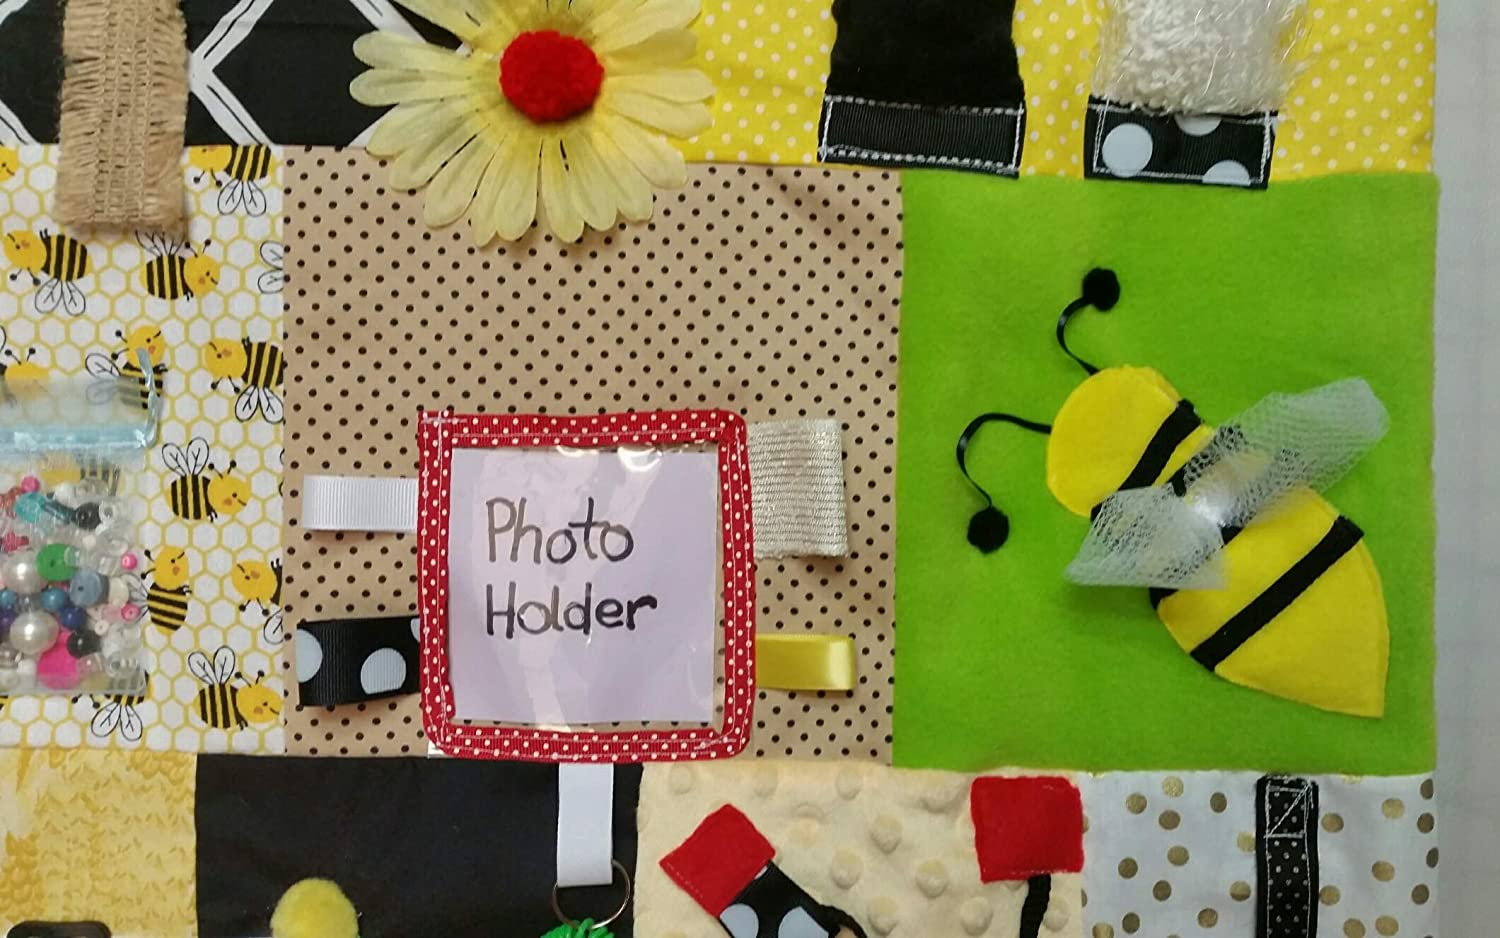 Size Memory Loss /& Alzheimers Blanket Dementia Toy with MY PHOTOS Picture Pocket 20 x 20 Fidget Quilt Handmade in the U.S.A